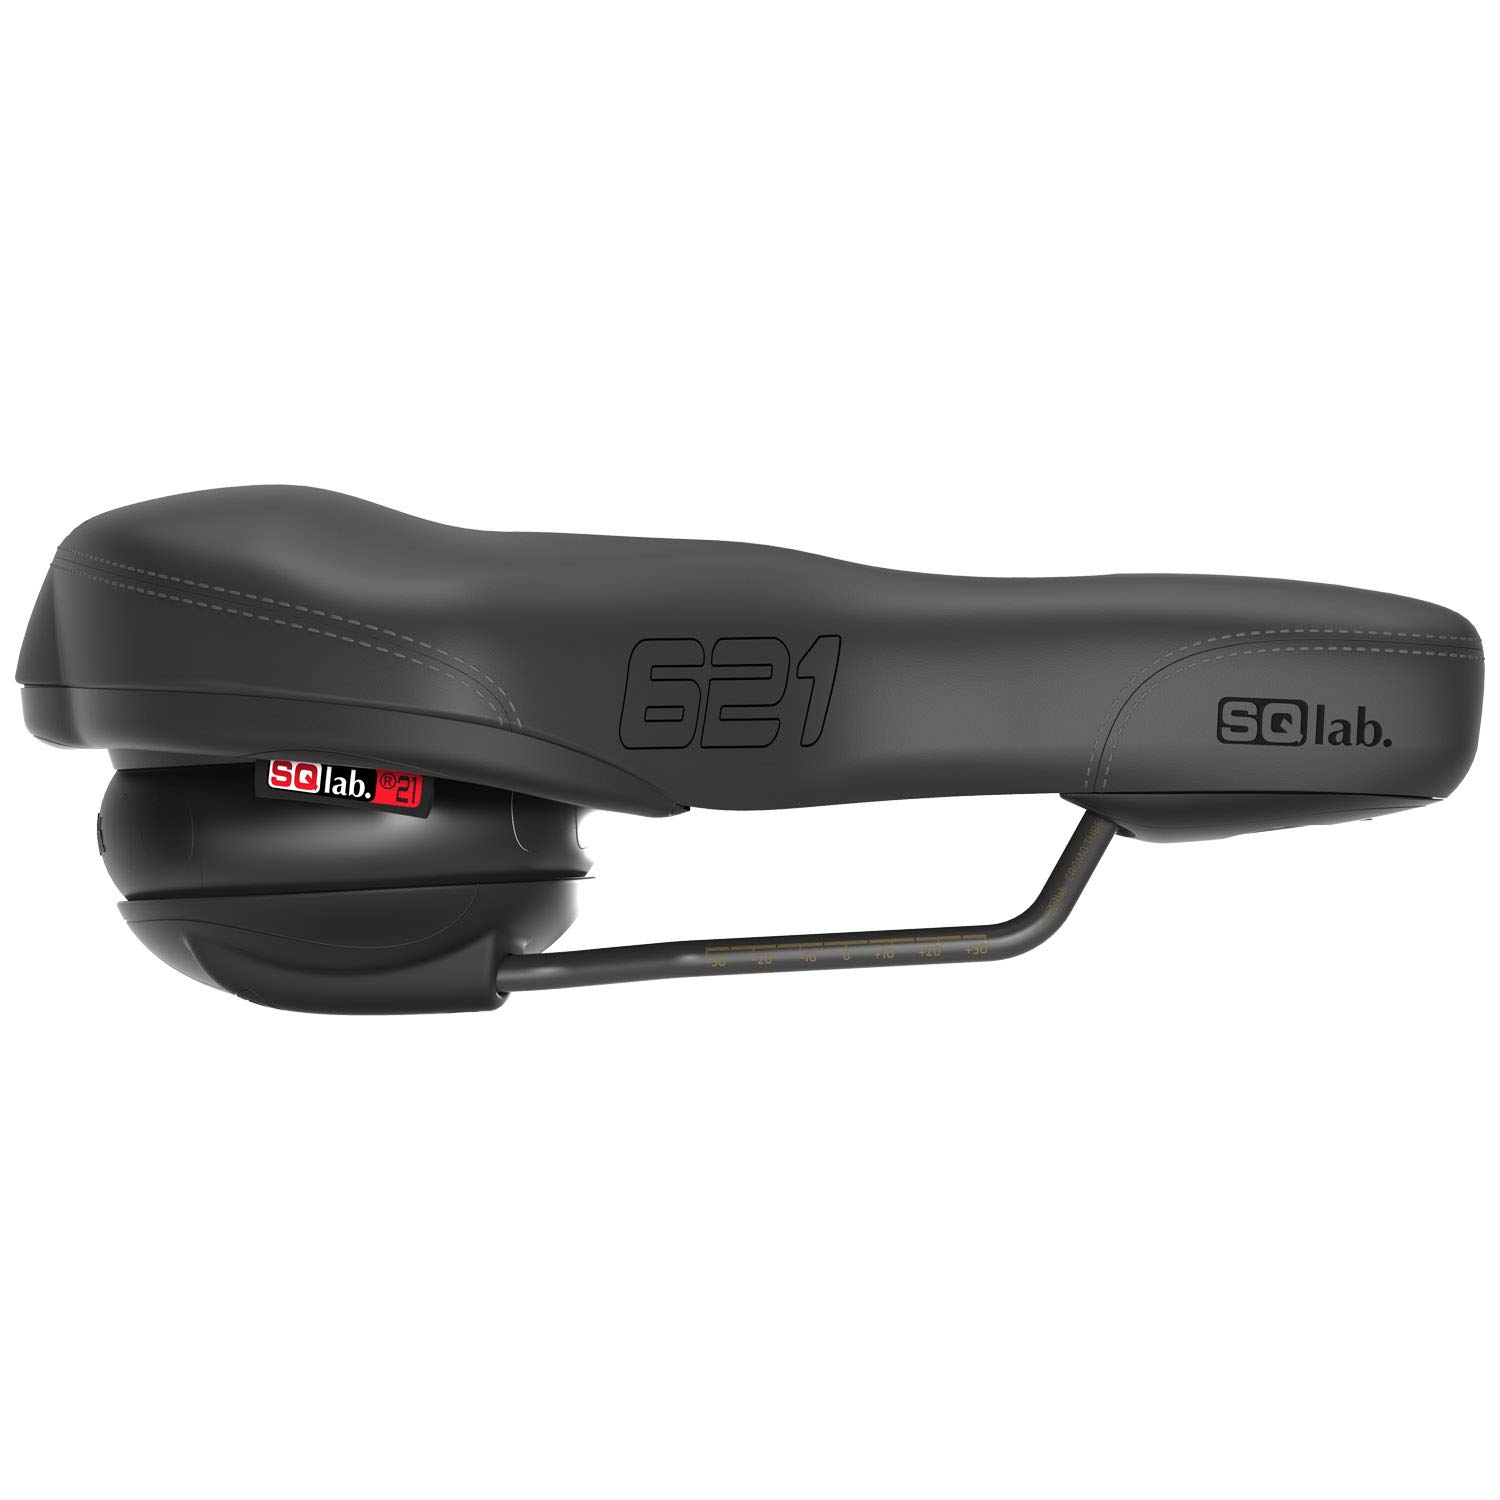 8c49392e8b201 SQlab 621 Ergolux Active Crmo Rail 210 Saddle - Black - 2040